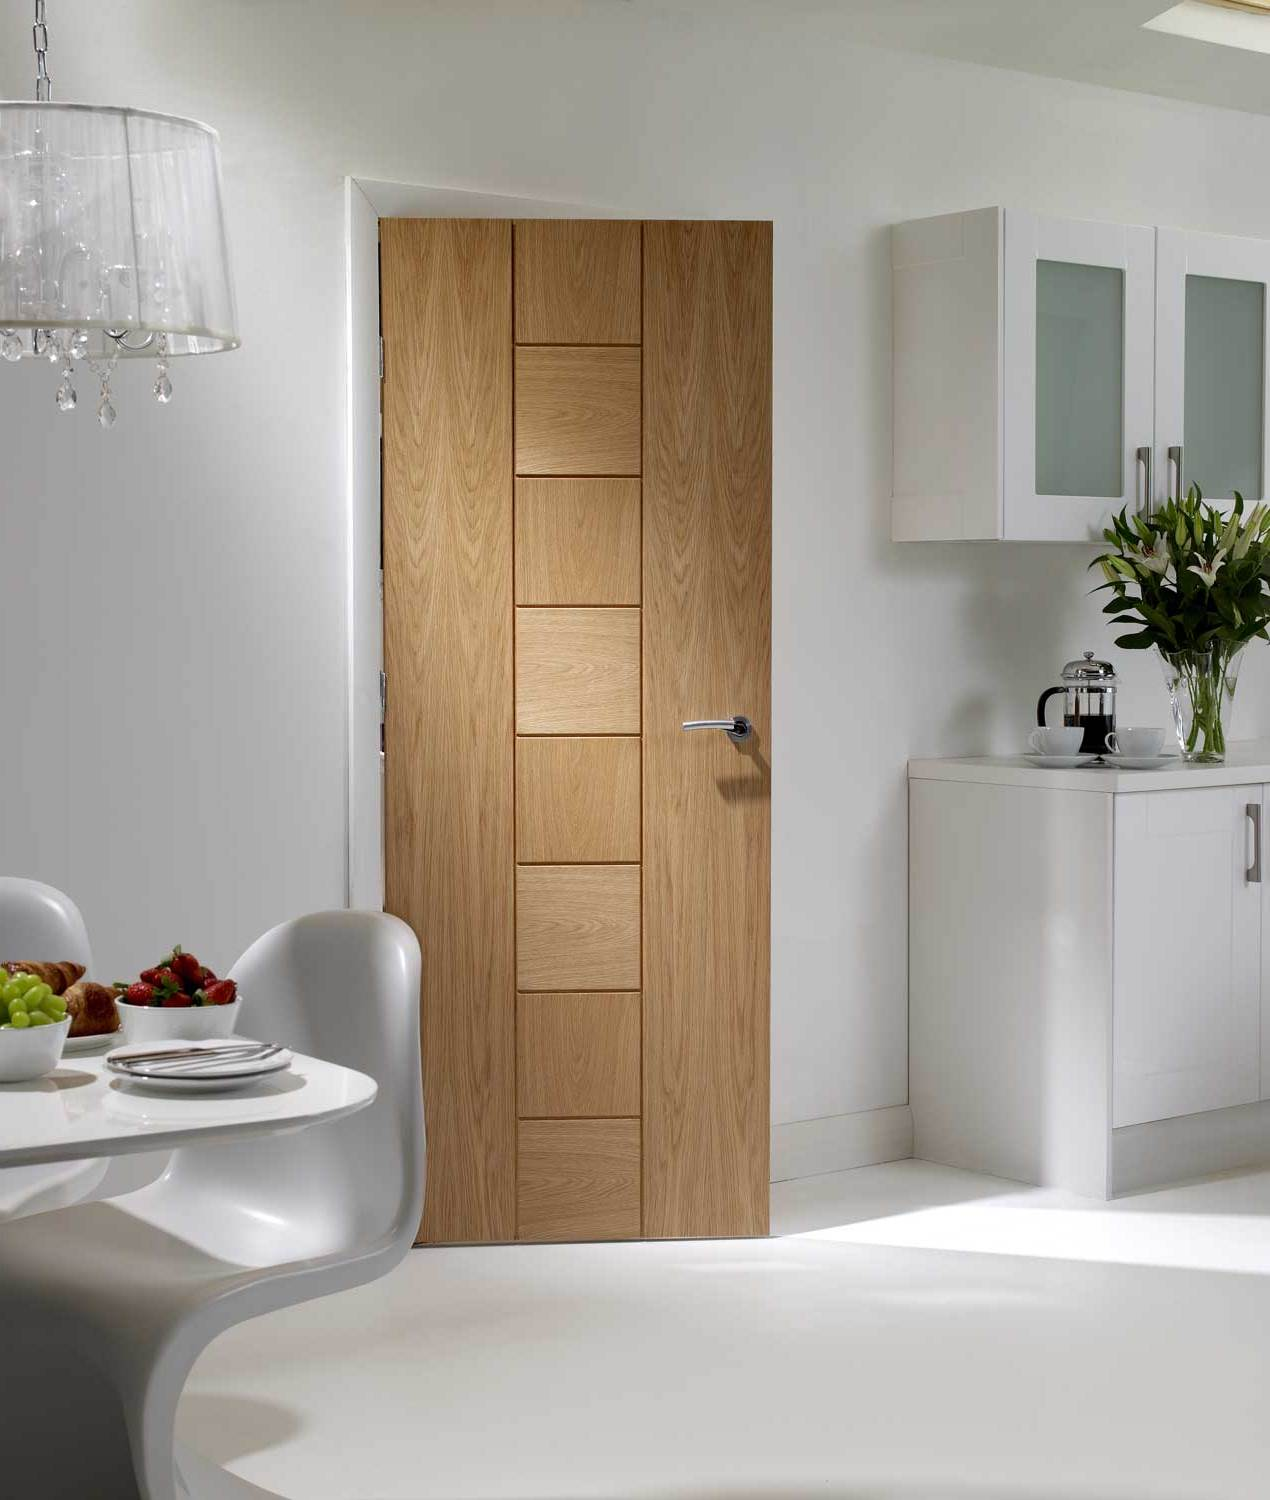 Oak fire doors uk for kitchen